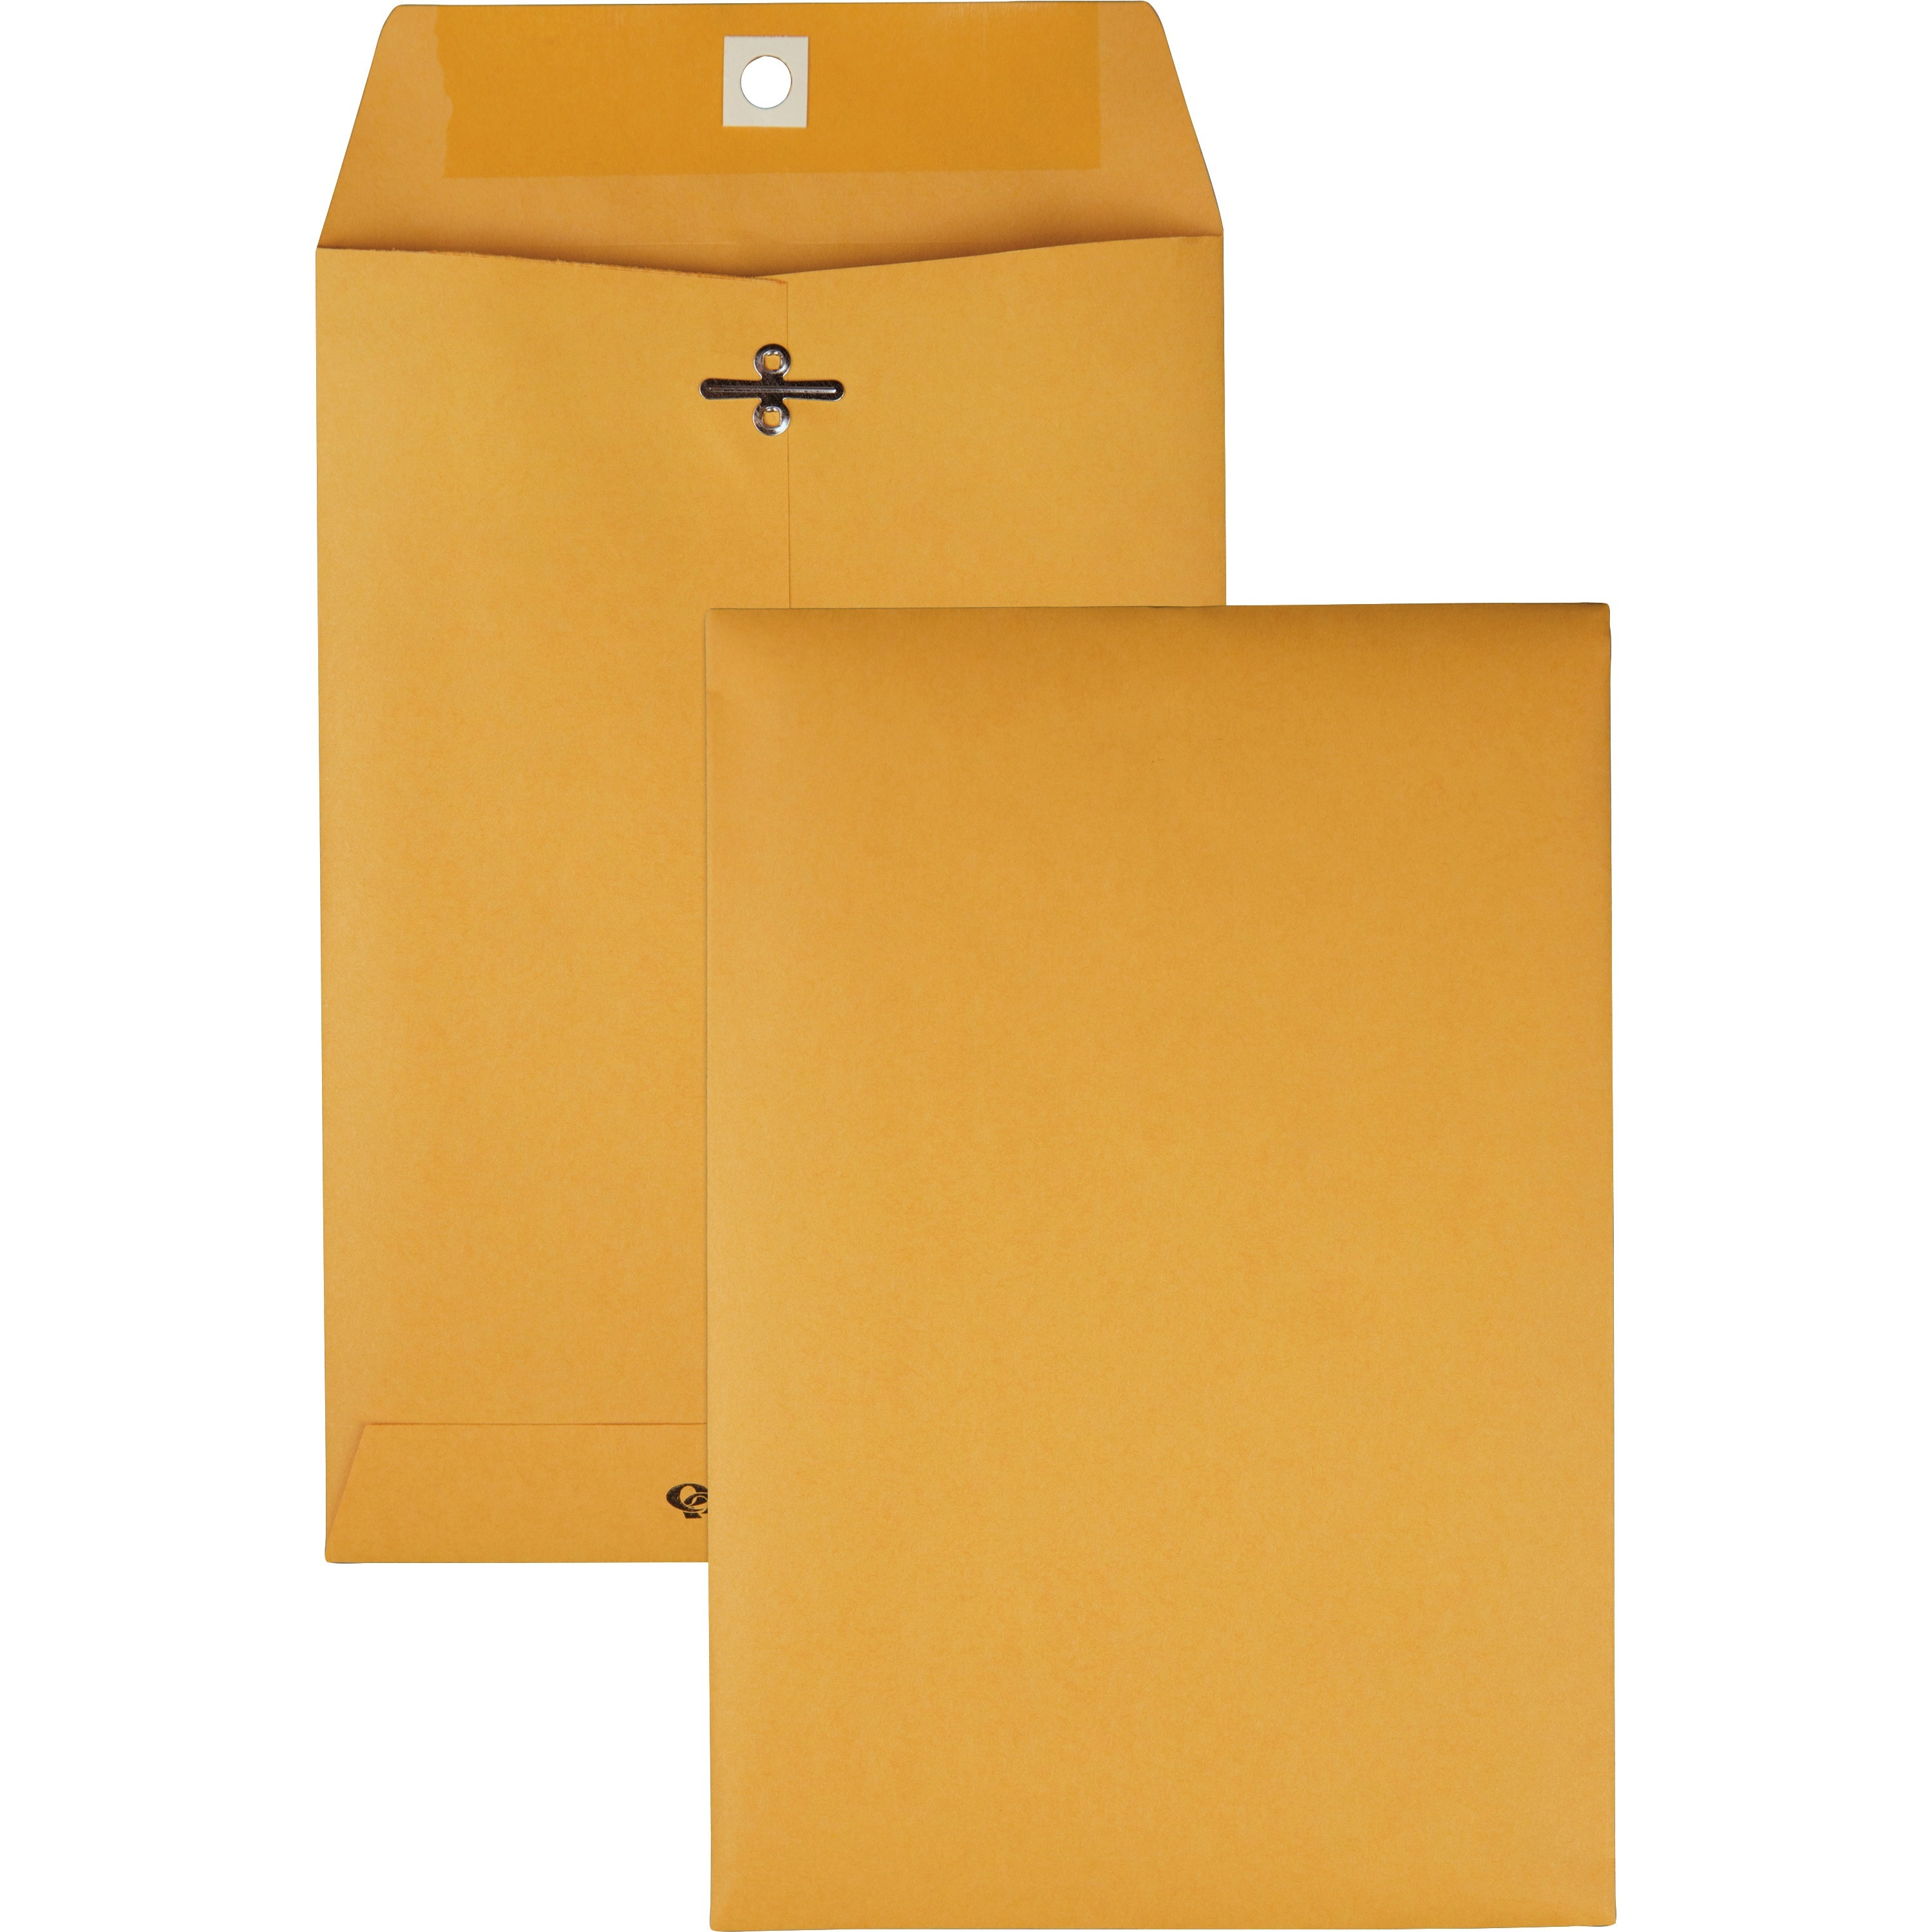 Clasp Envelope, 6 1/2 x 9 1/2, 28lb, Brown Kraft, 100/Box